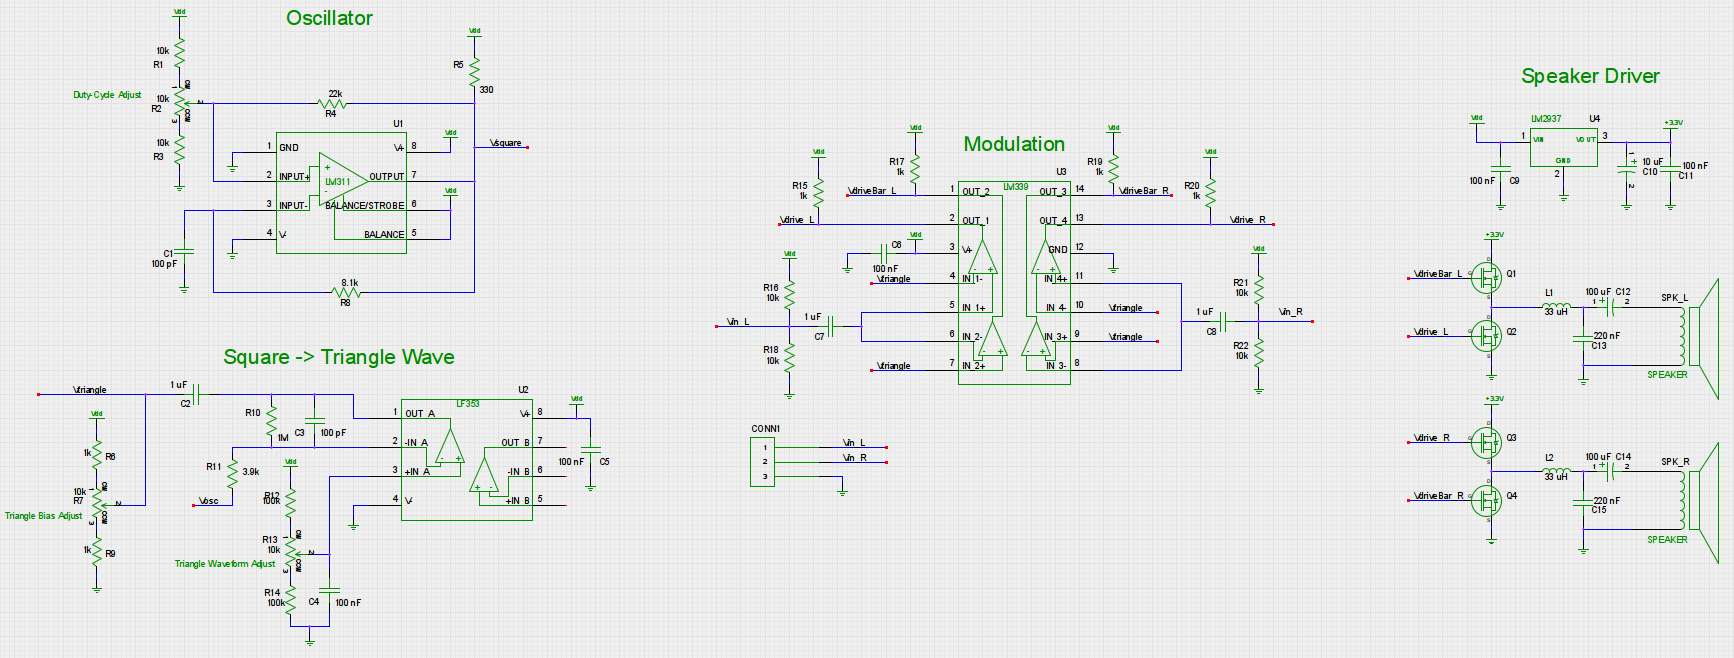 Pmd68 ecs227 hl577 old likewise Pll likewise Voltage Limiter Circuit Using Op additionally The Different Types Of Cctv Cameras in addition Pinout 2n3055. on integrator circuit diagram